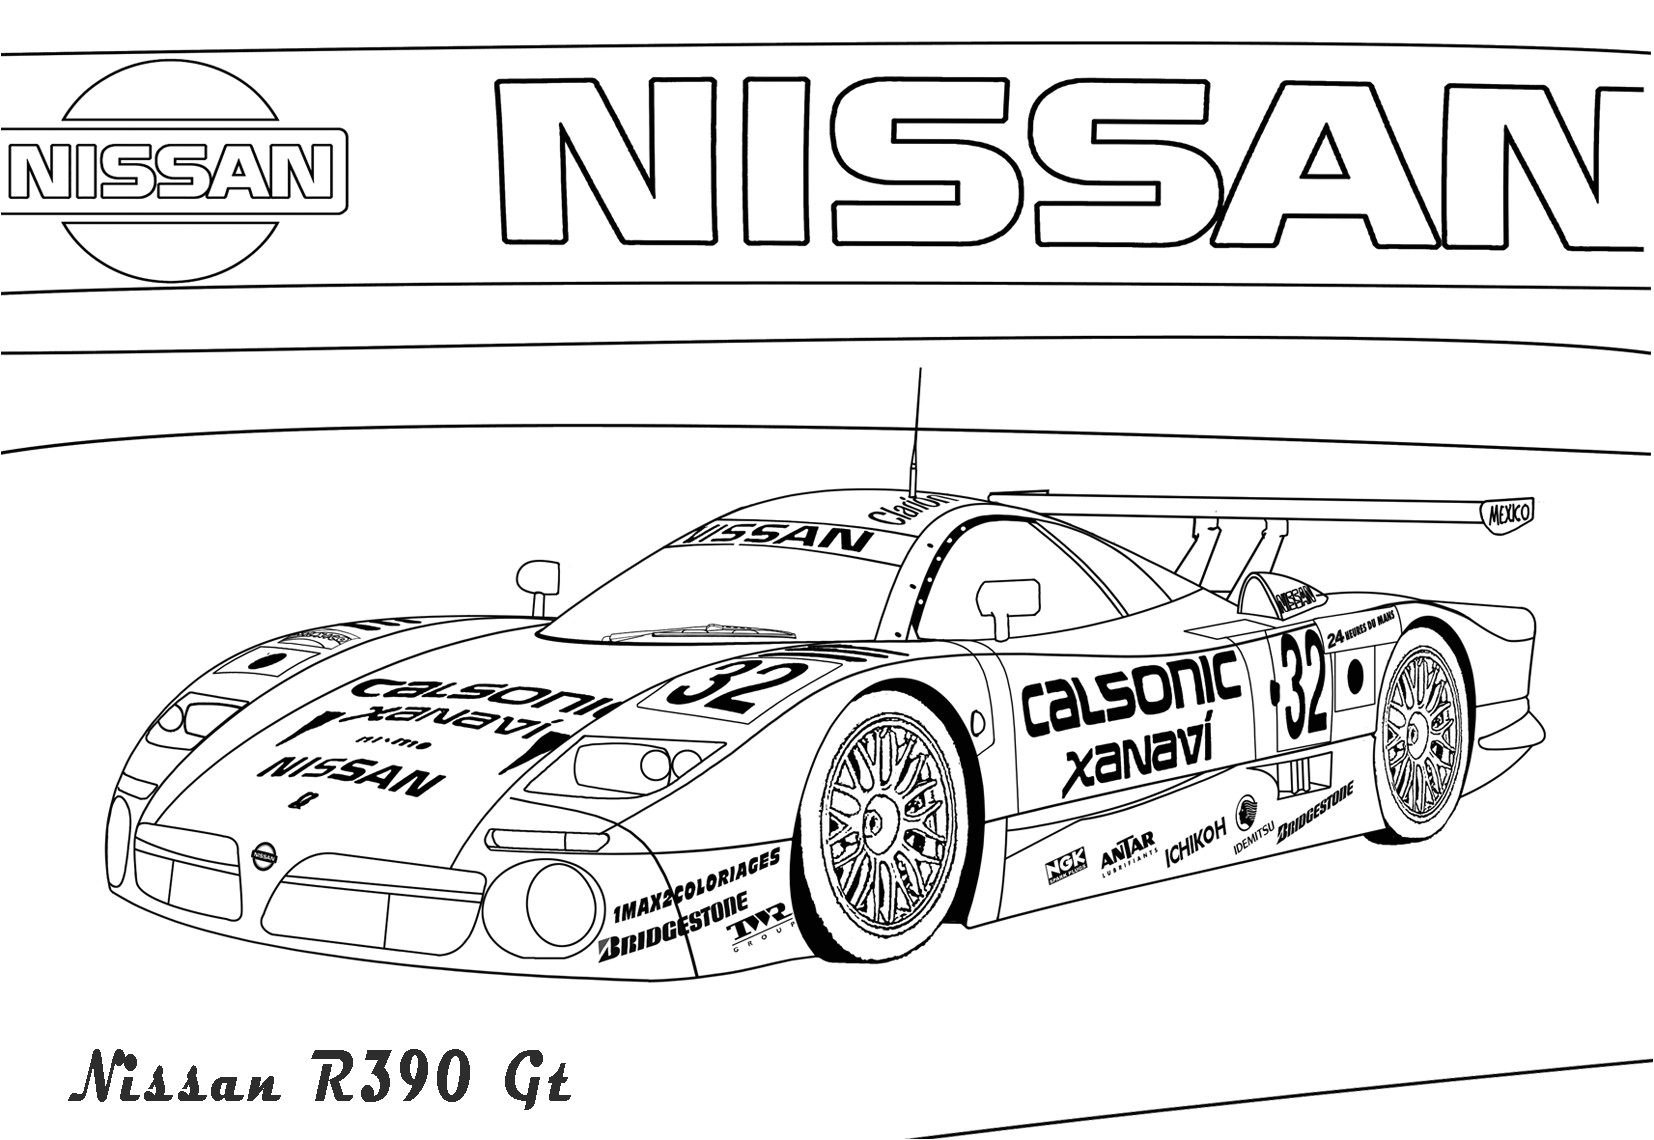 coloring pages nissan gtr nissan gtr red flaming ichijiku coloring nissan gtr pages